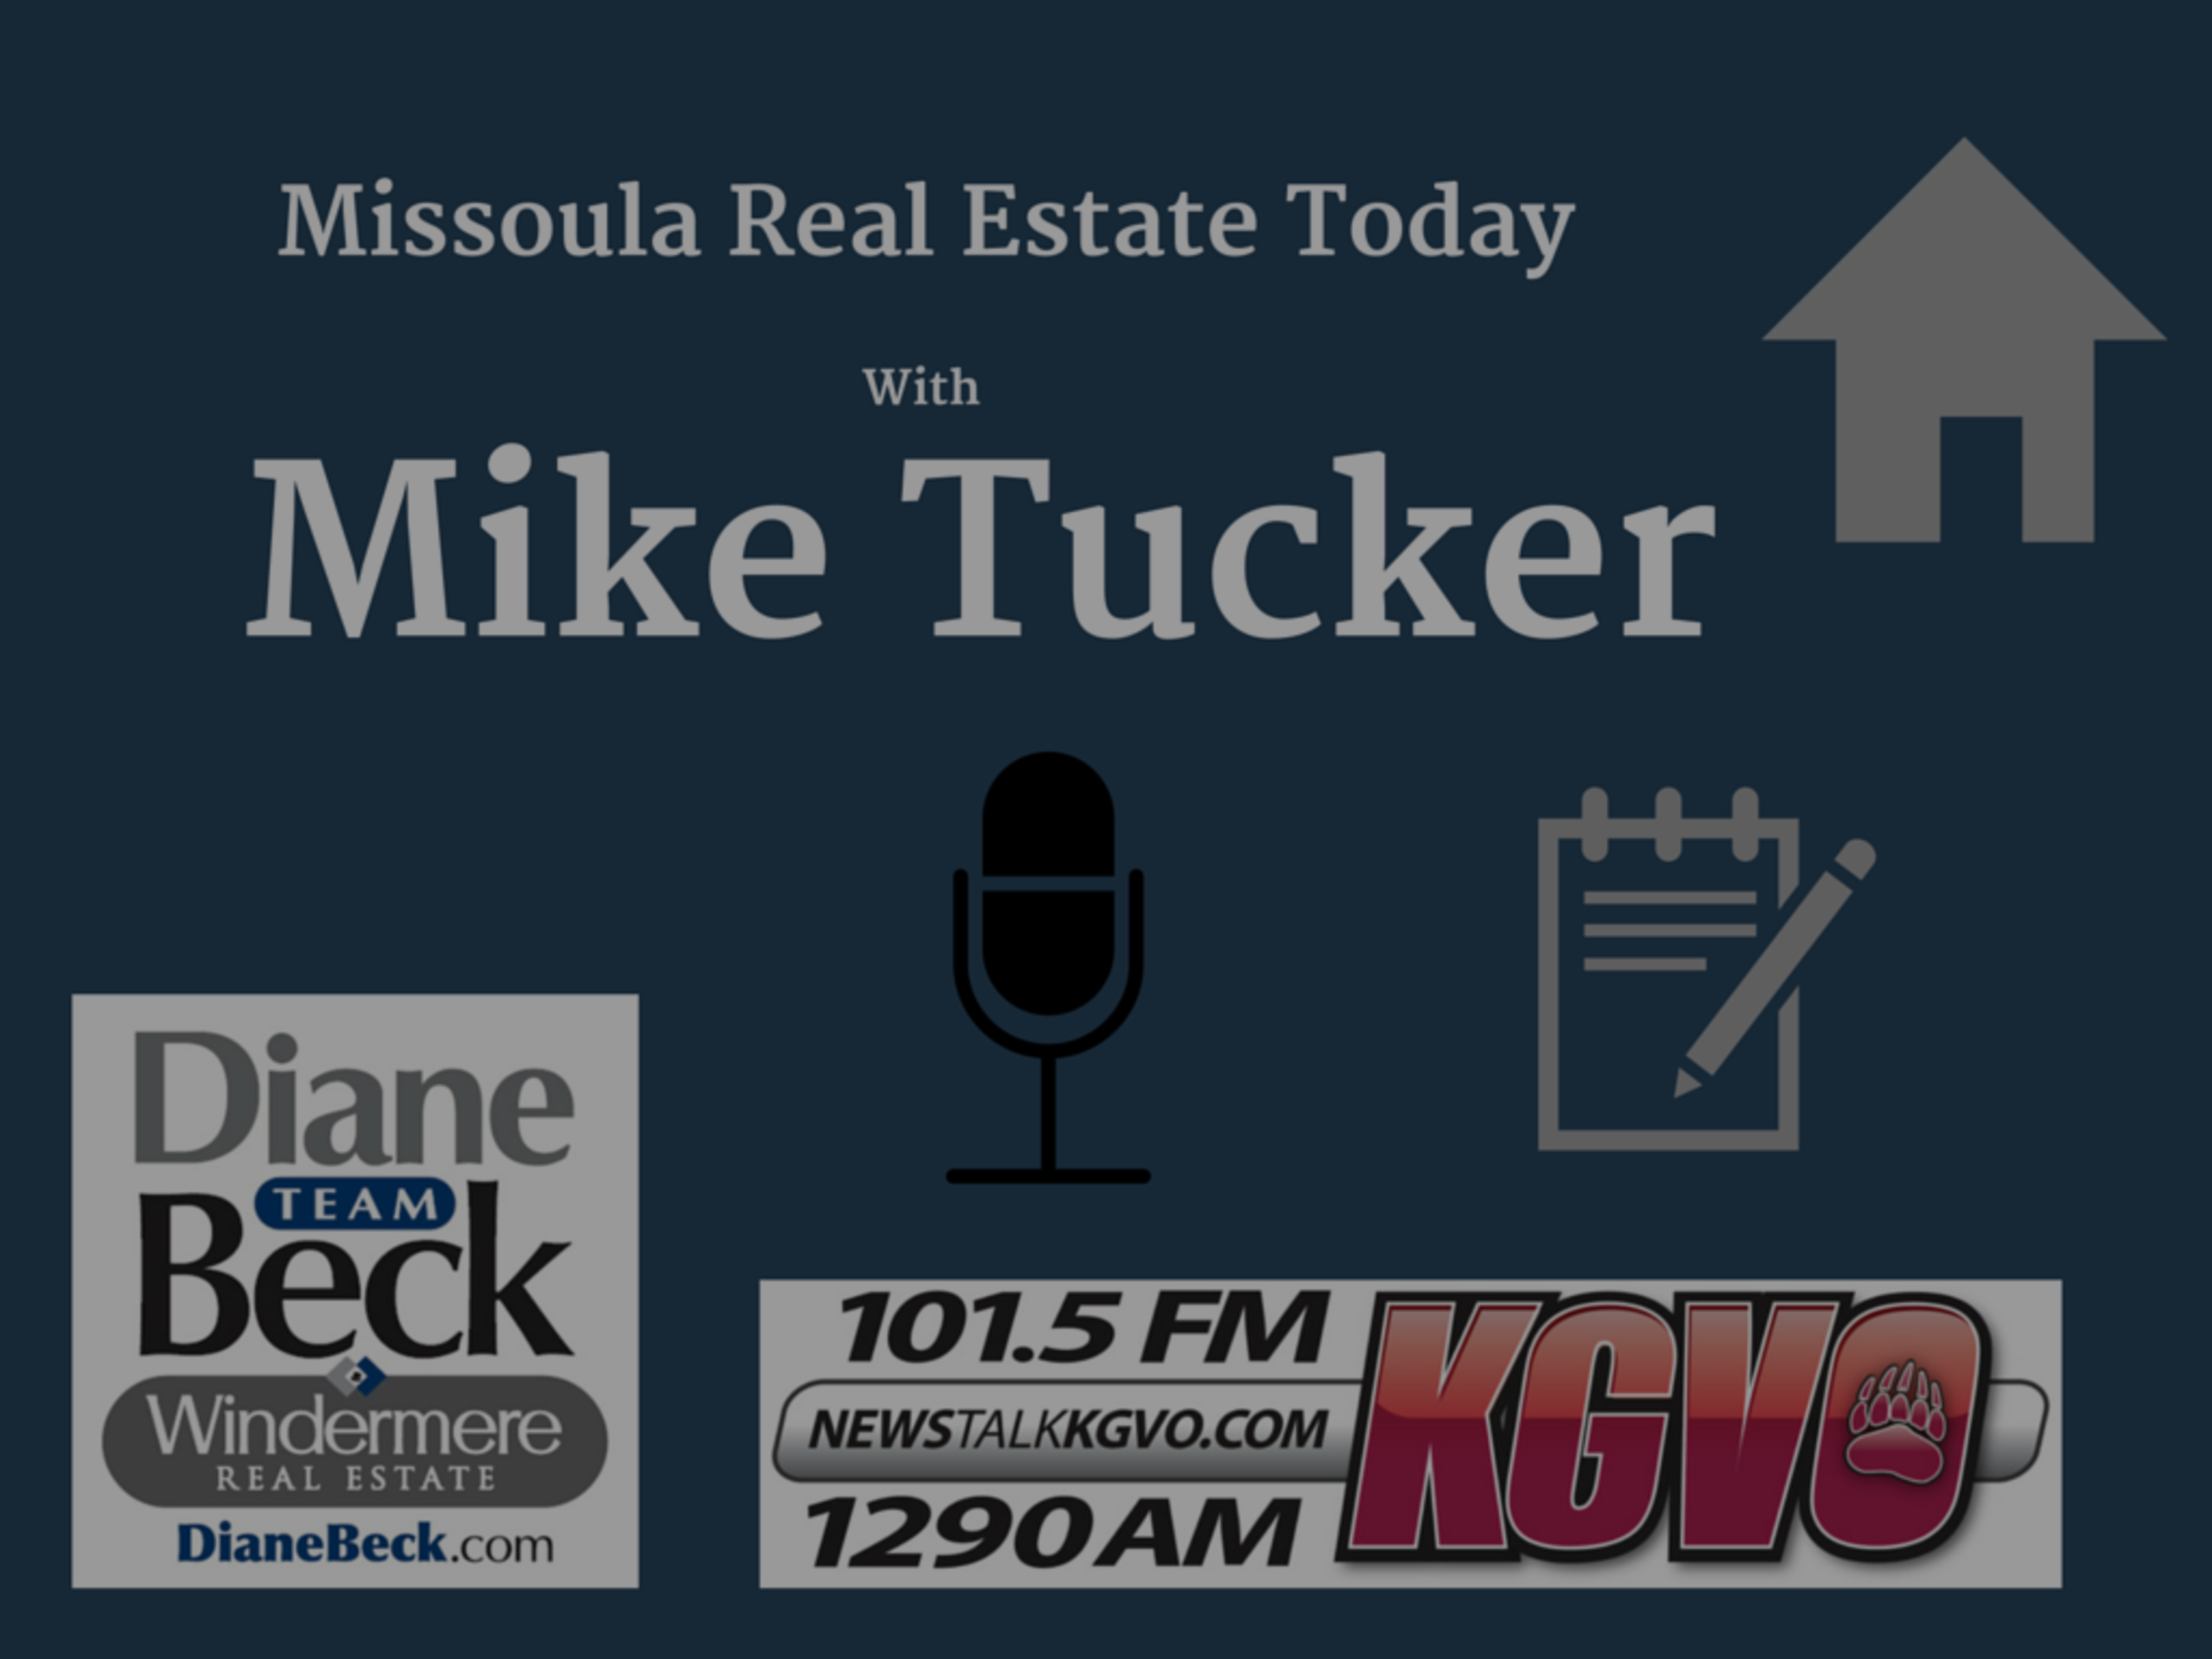 Missoula Real Estate Today with guest speaker Mike Tucker!